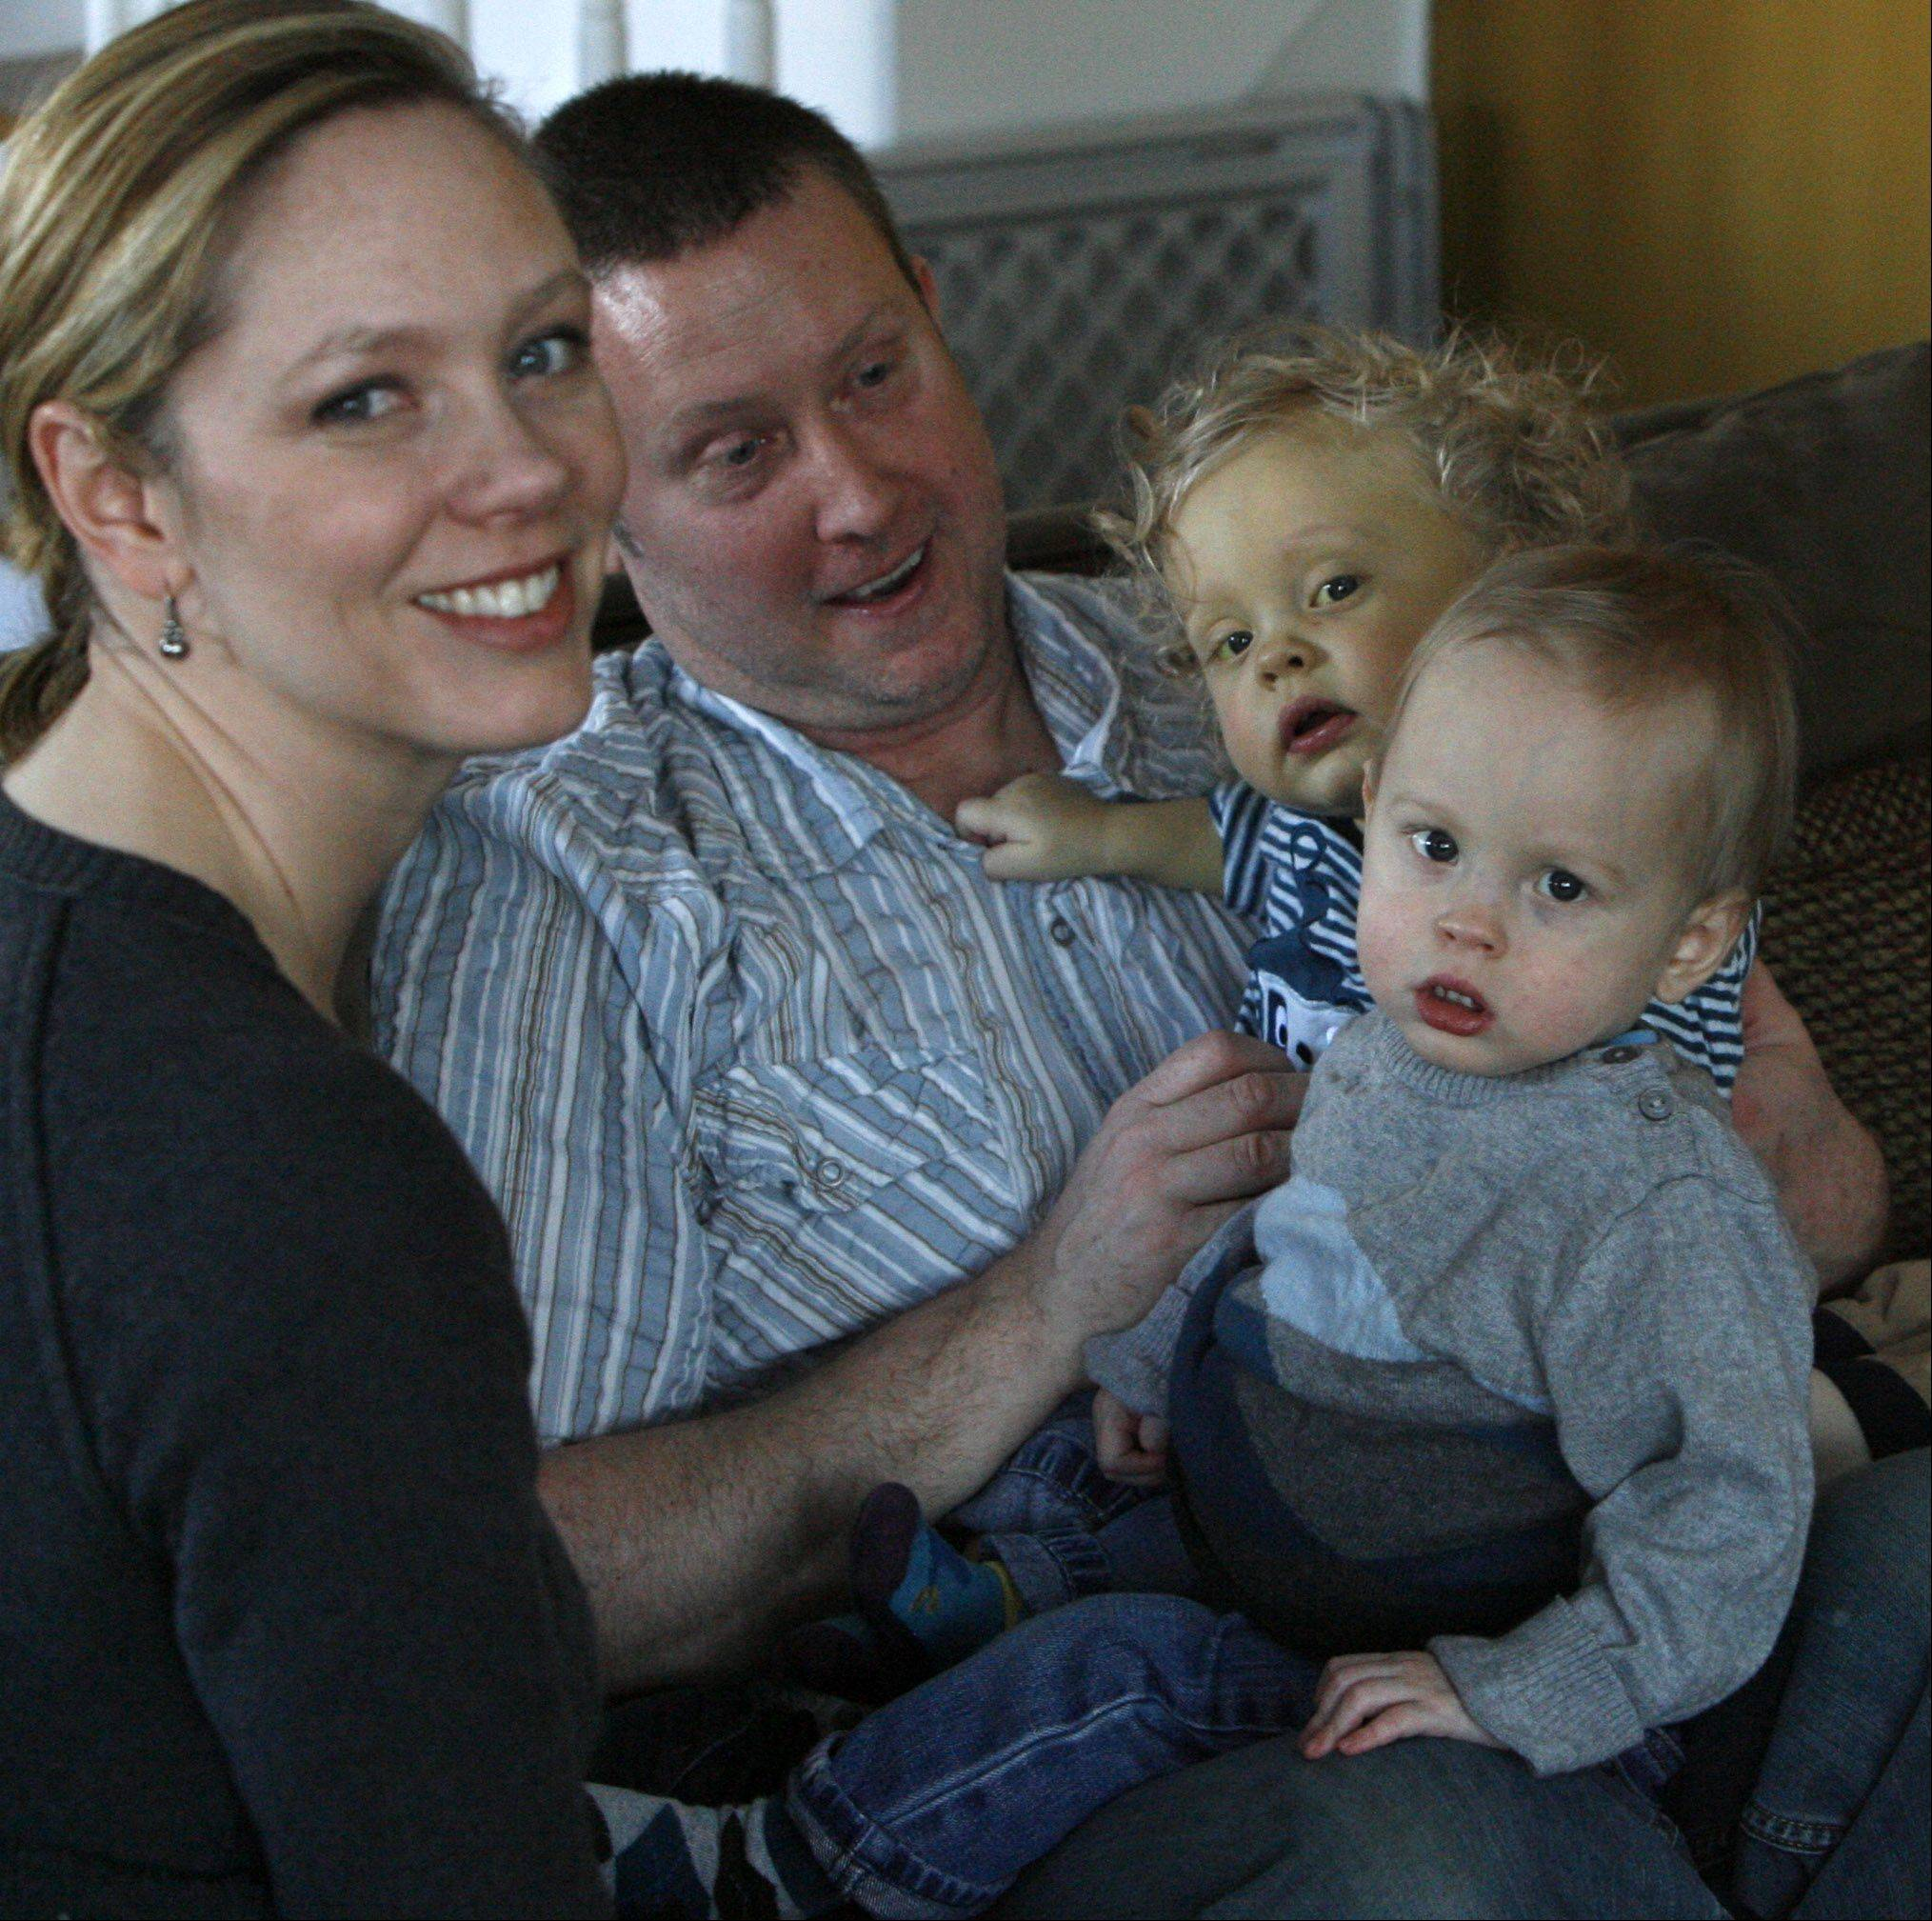 Then 17-month-old twins Luke, foreground, and Jake with their parents Robyn and Scott Swanson and their brother Gunnar in 2010. Luke and Jake are the only documented case of twins in the U.S. or Canada that needed liver transplants due to a rare condition called biliary atresia.